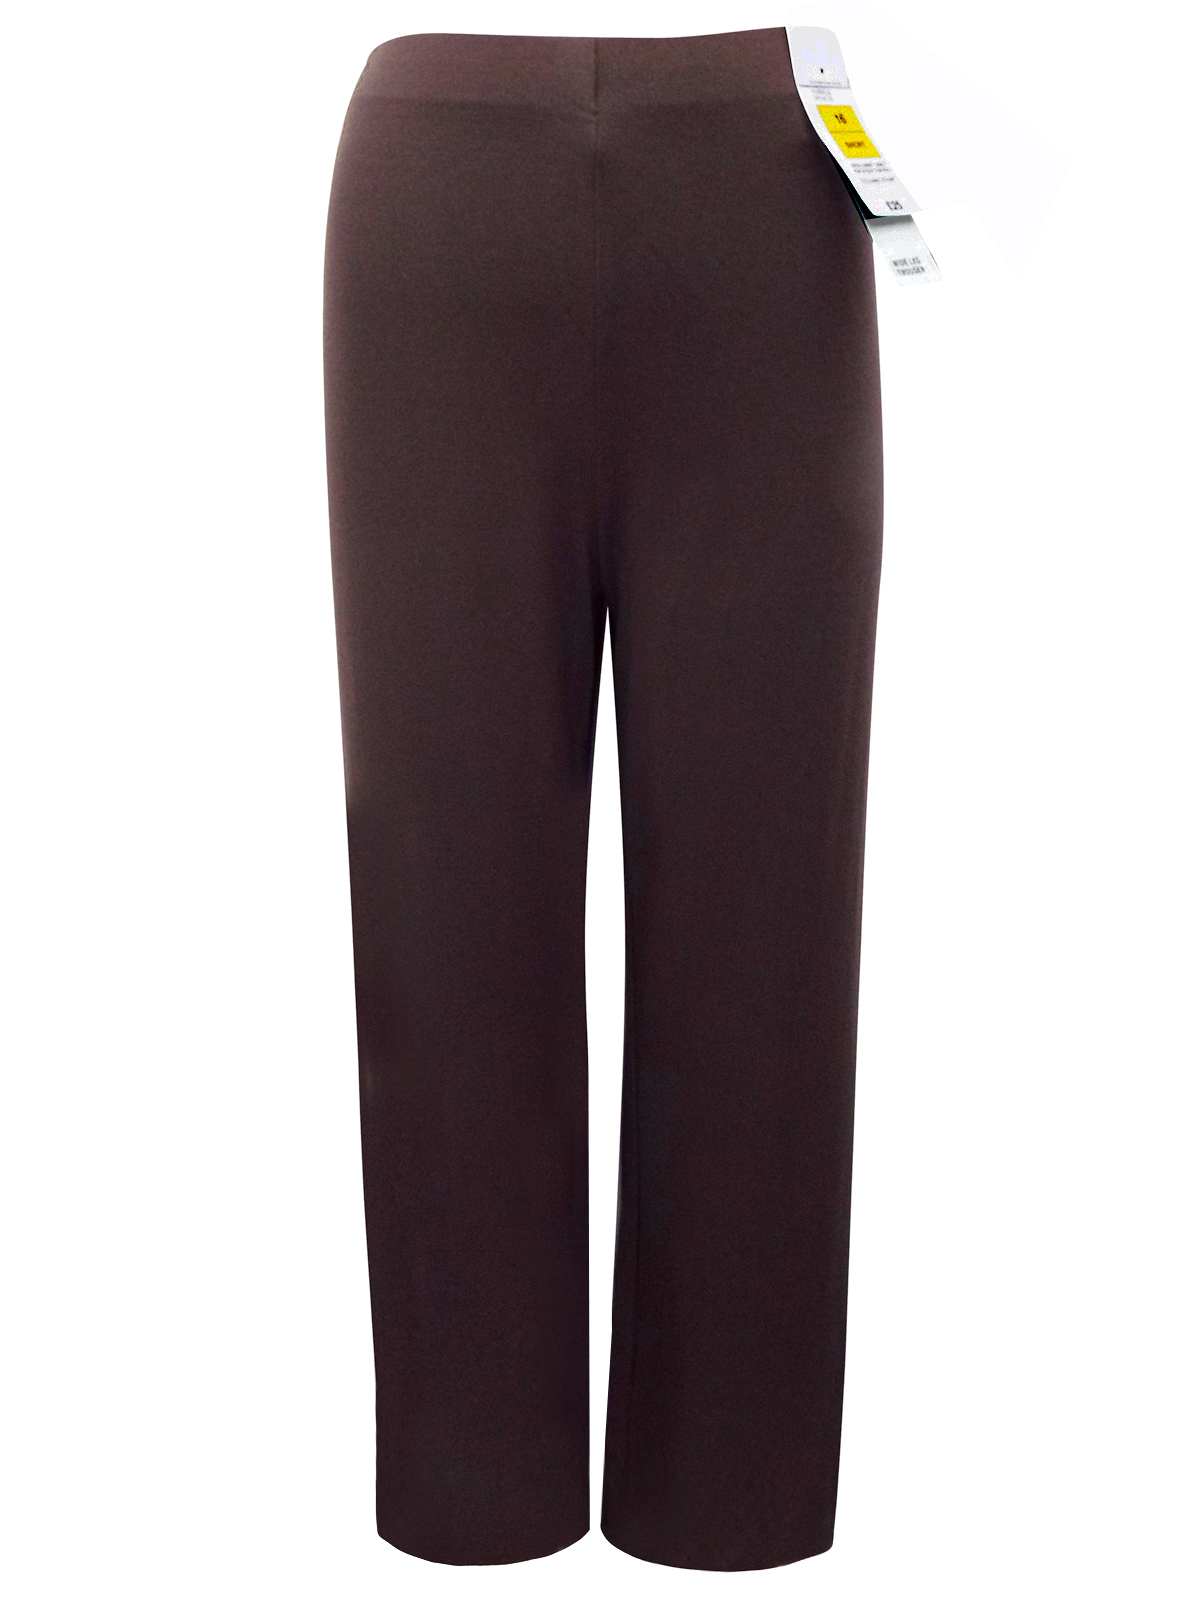 plus size trousers marks and spencer photo - 1